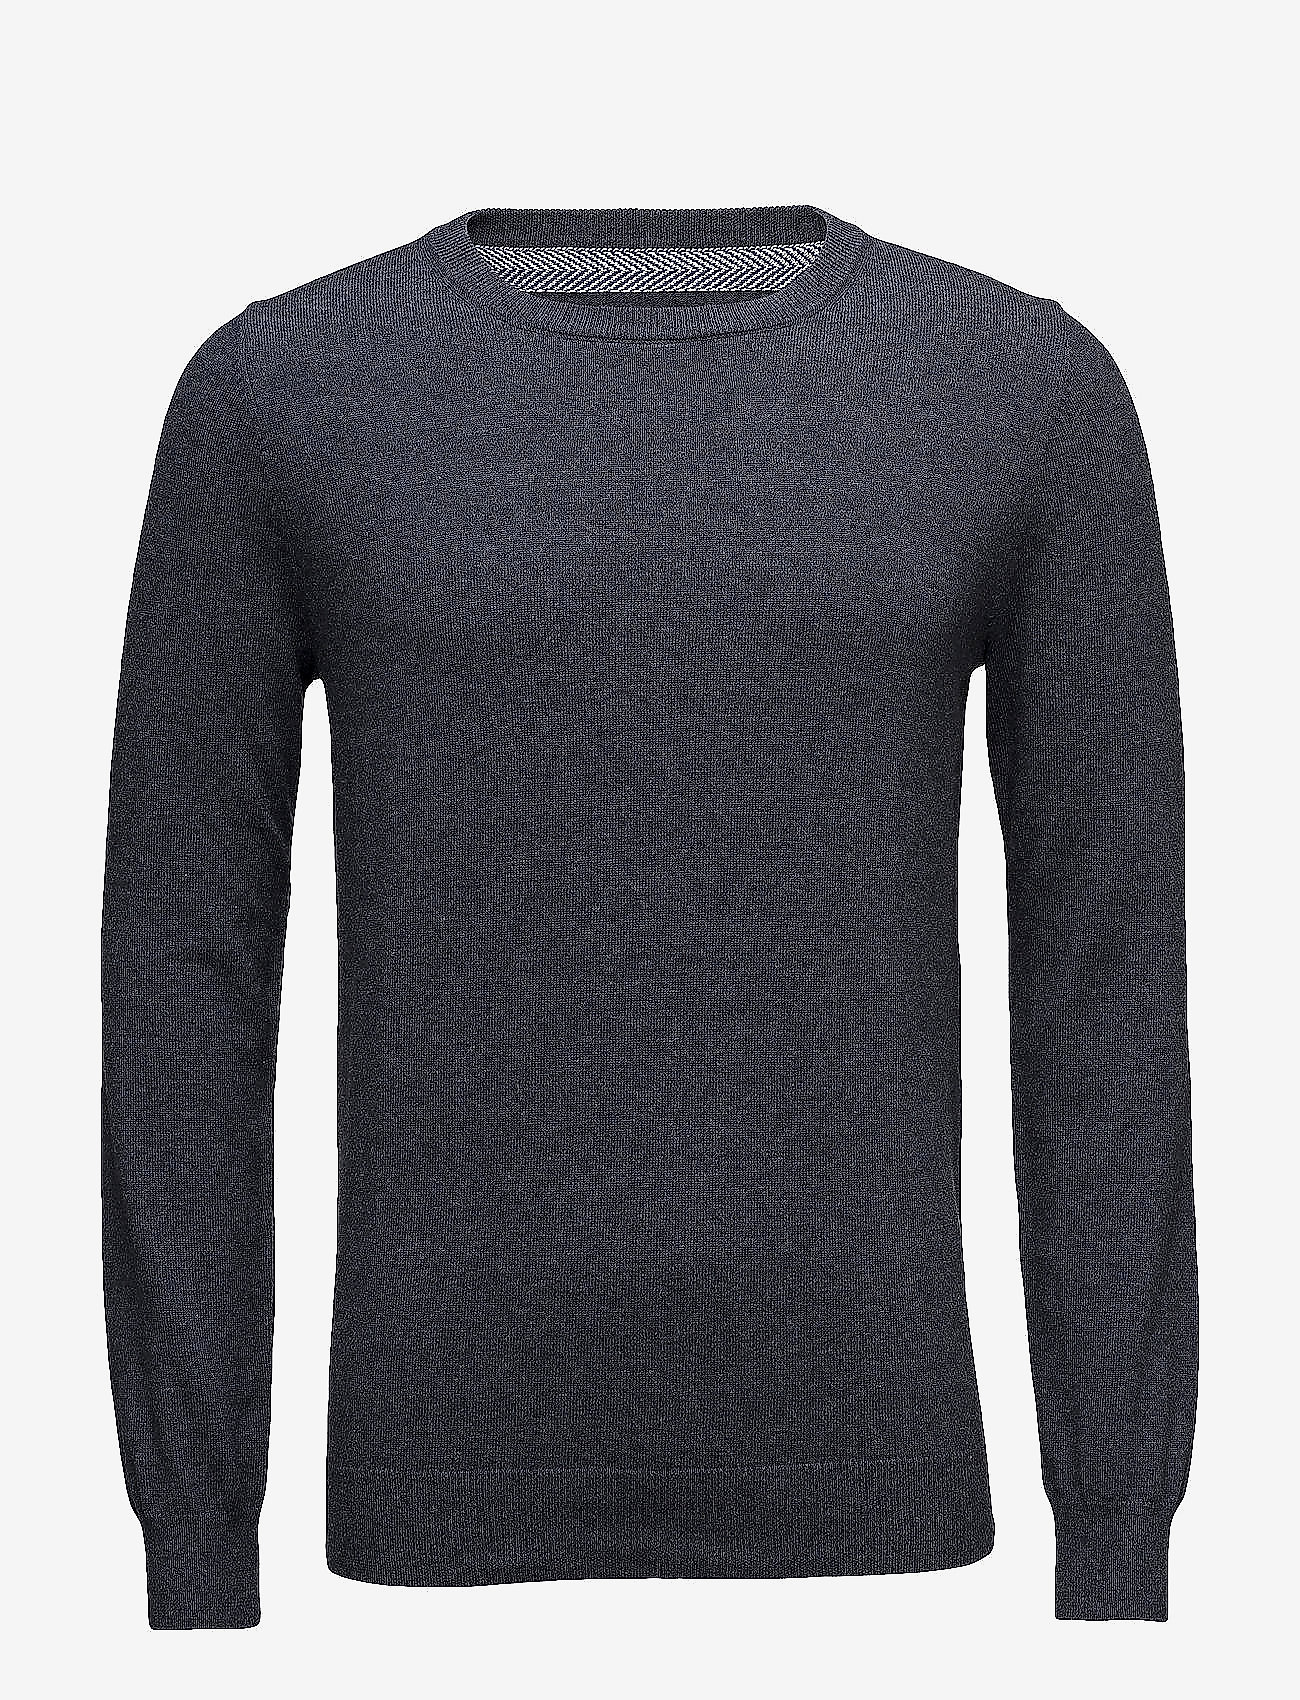 Bertoni - Frederik - basic knitwear - 735 dark denim